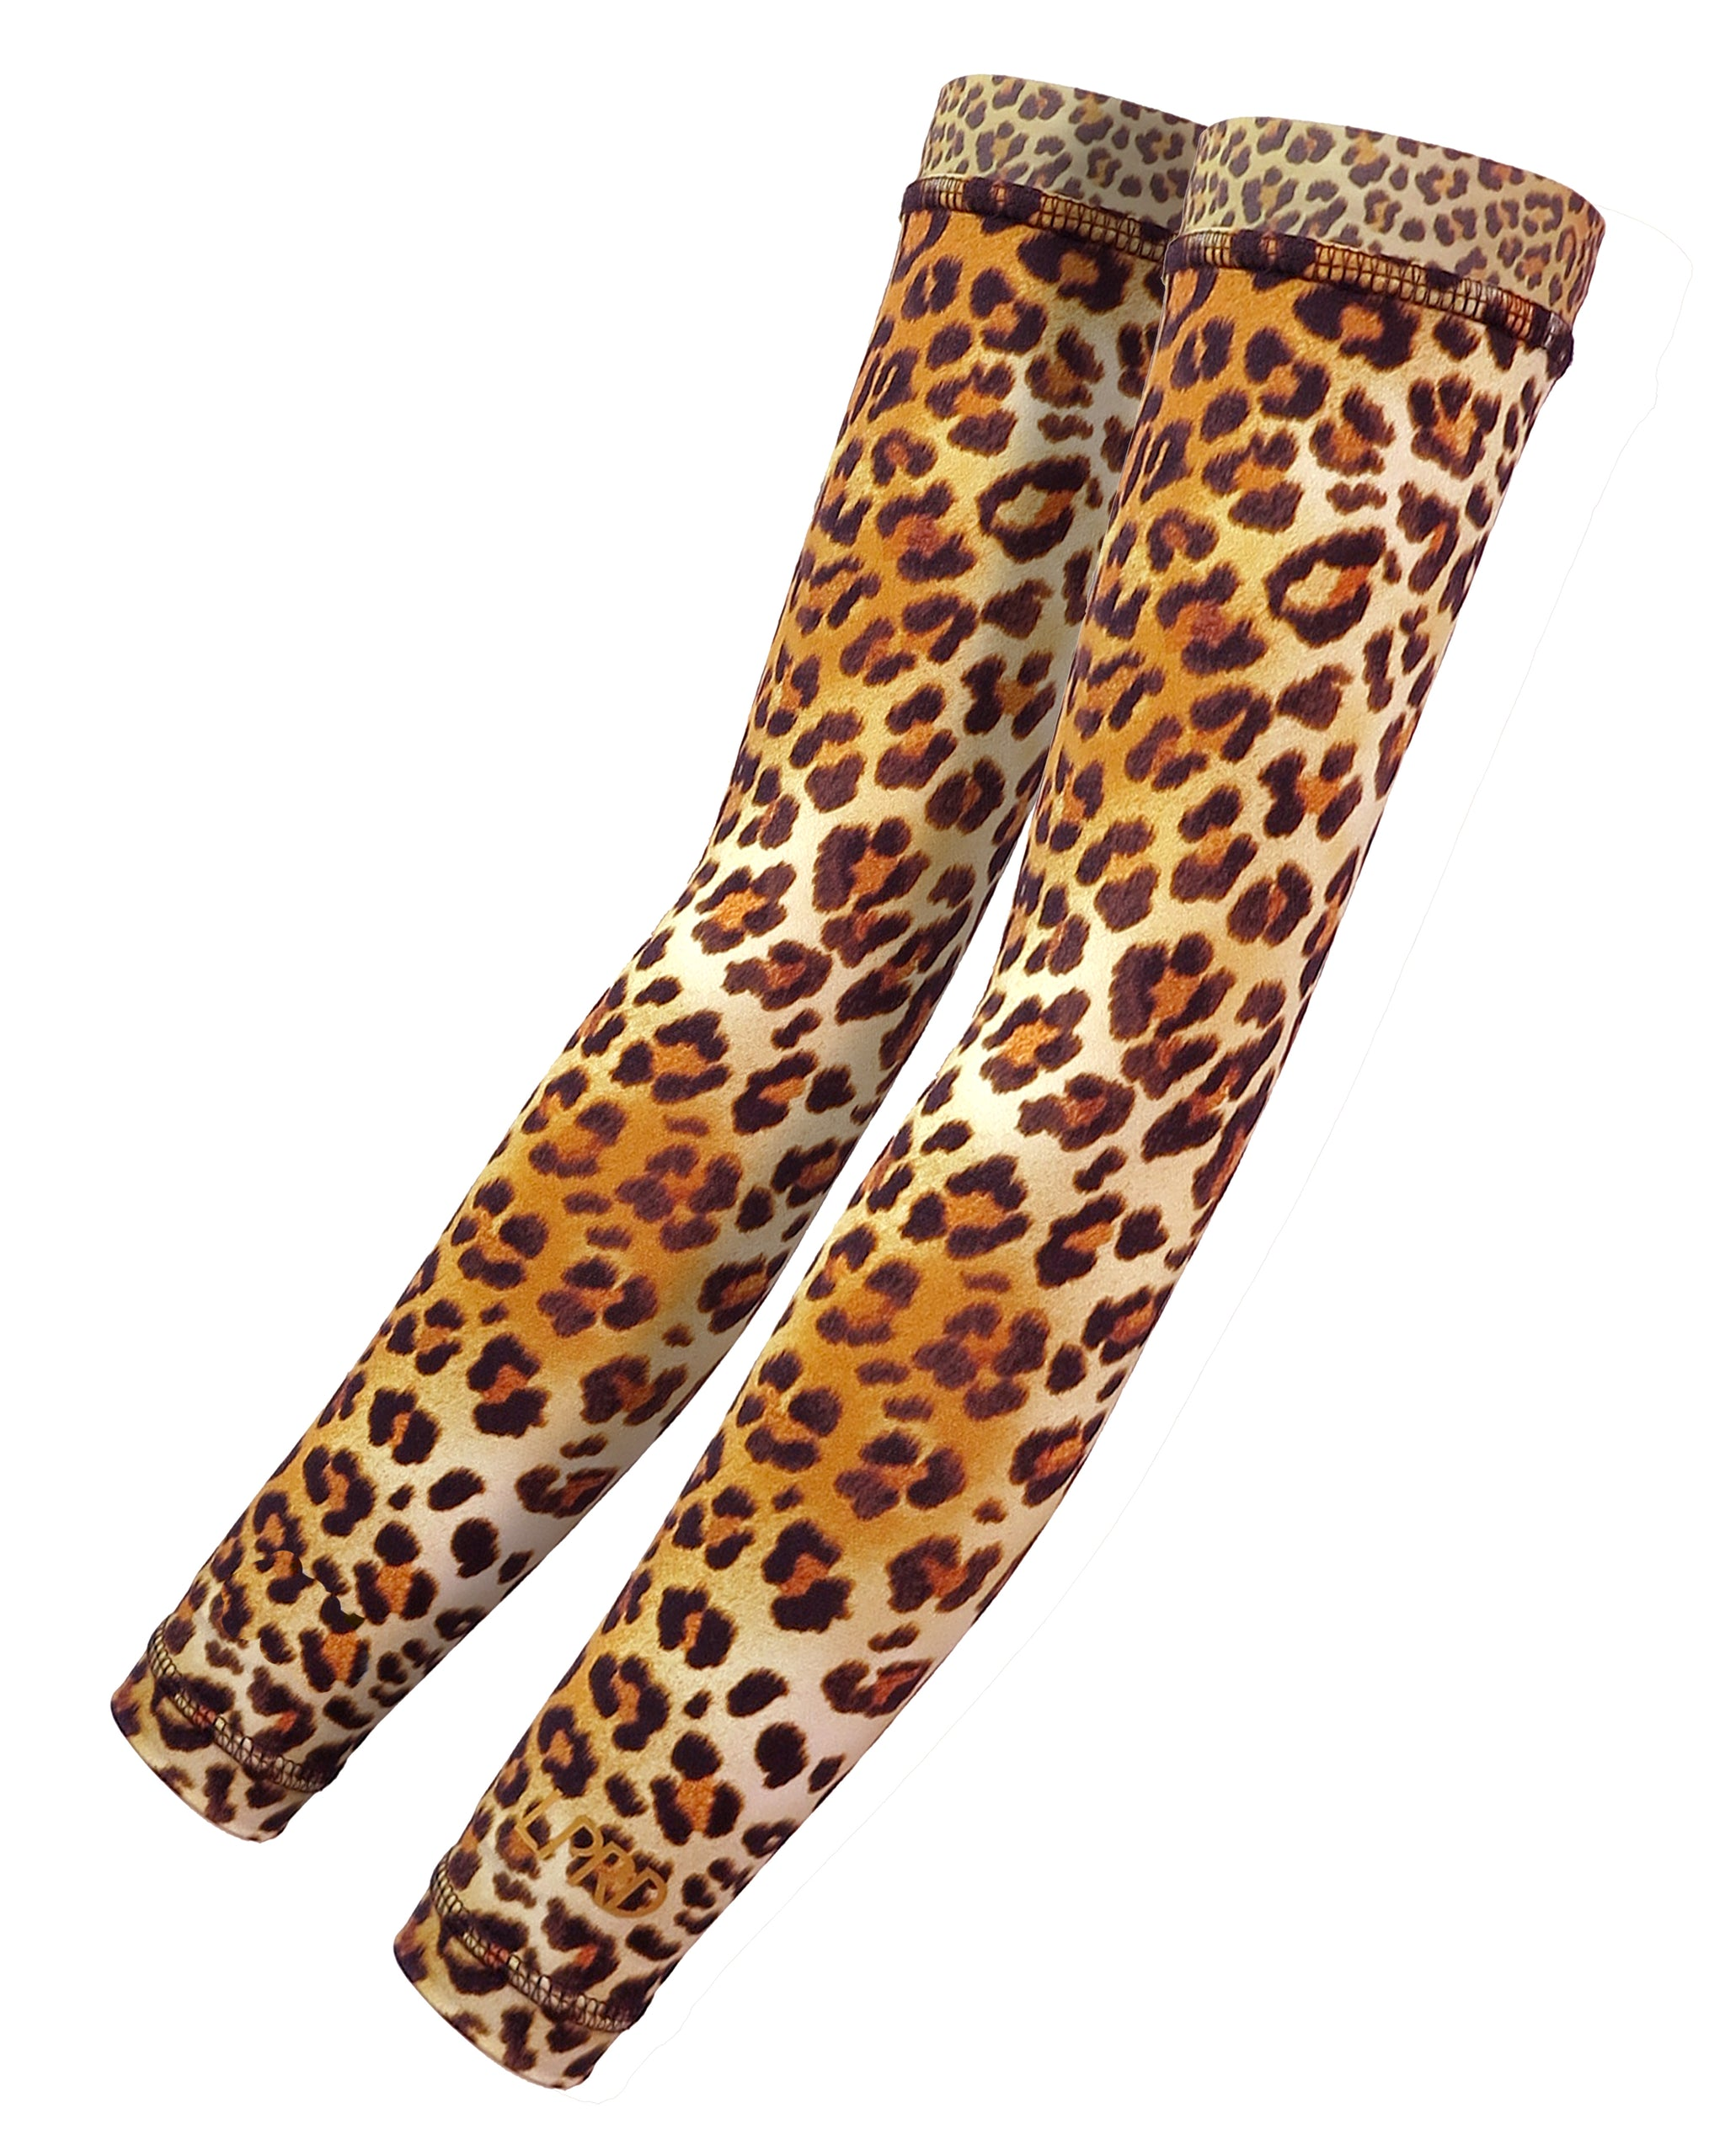 Arm Warmers for cycling in Signature Leopard Print